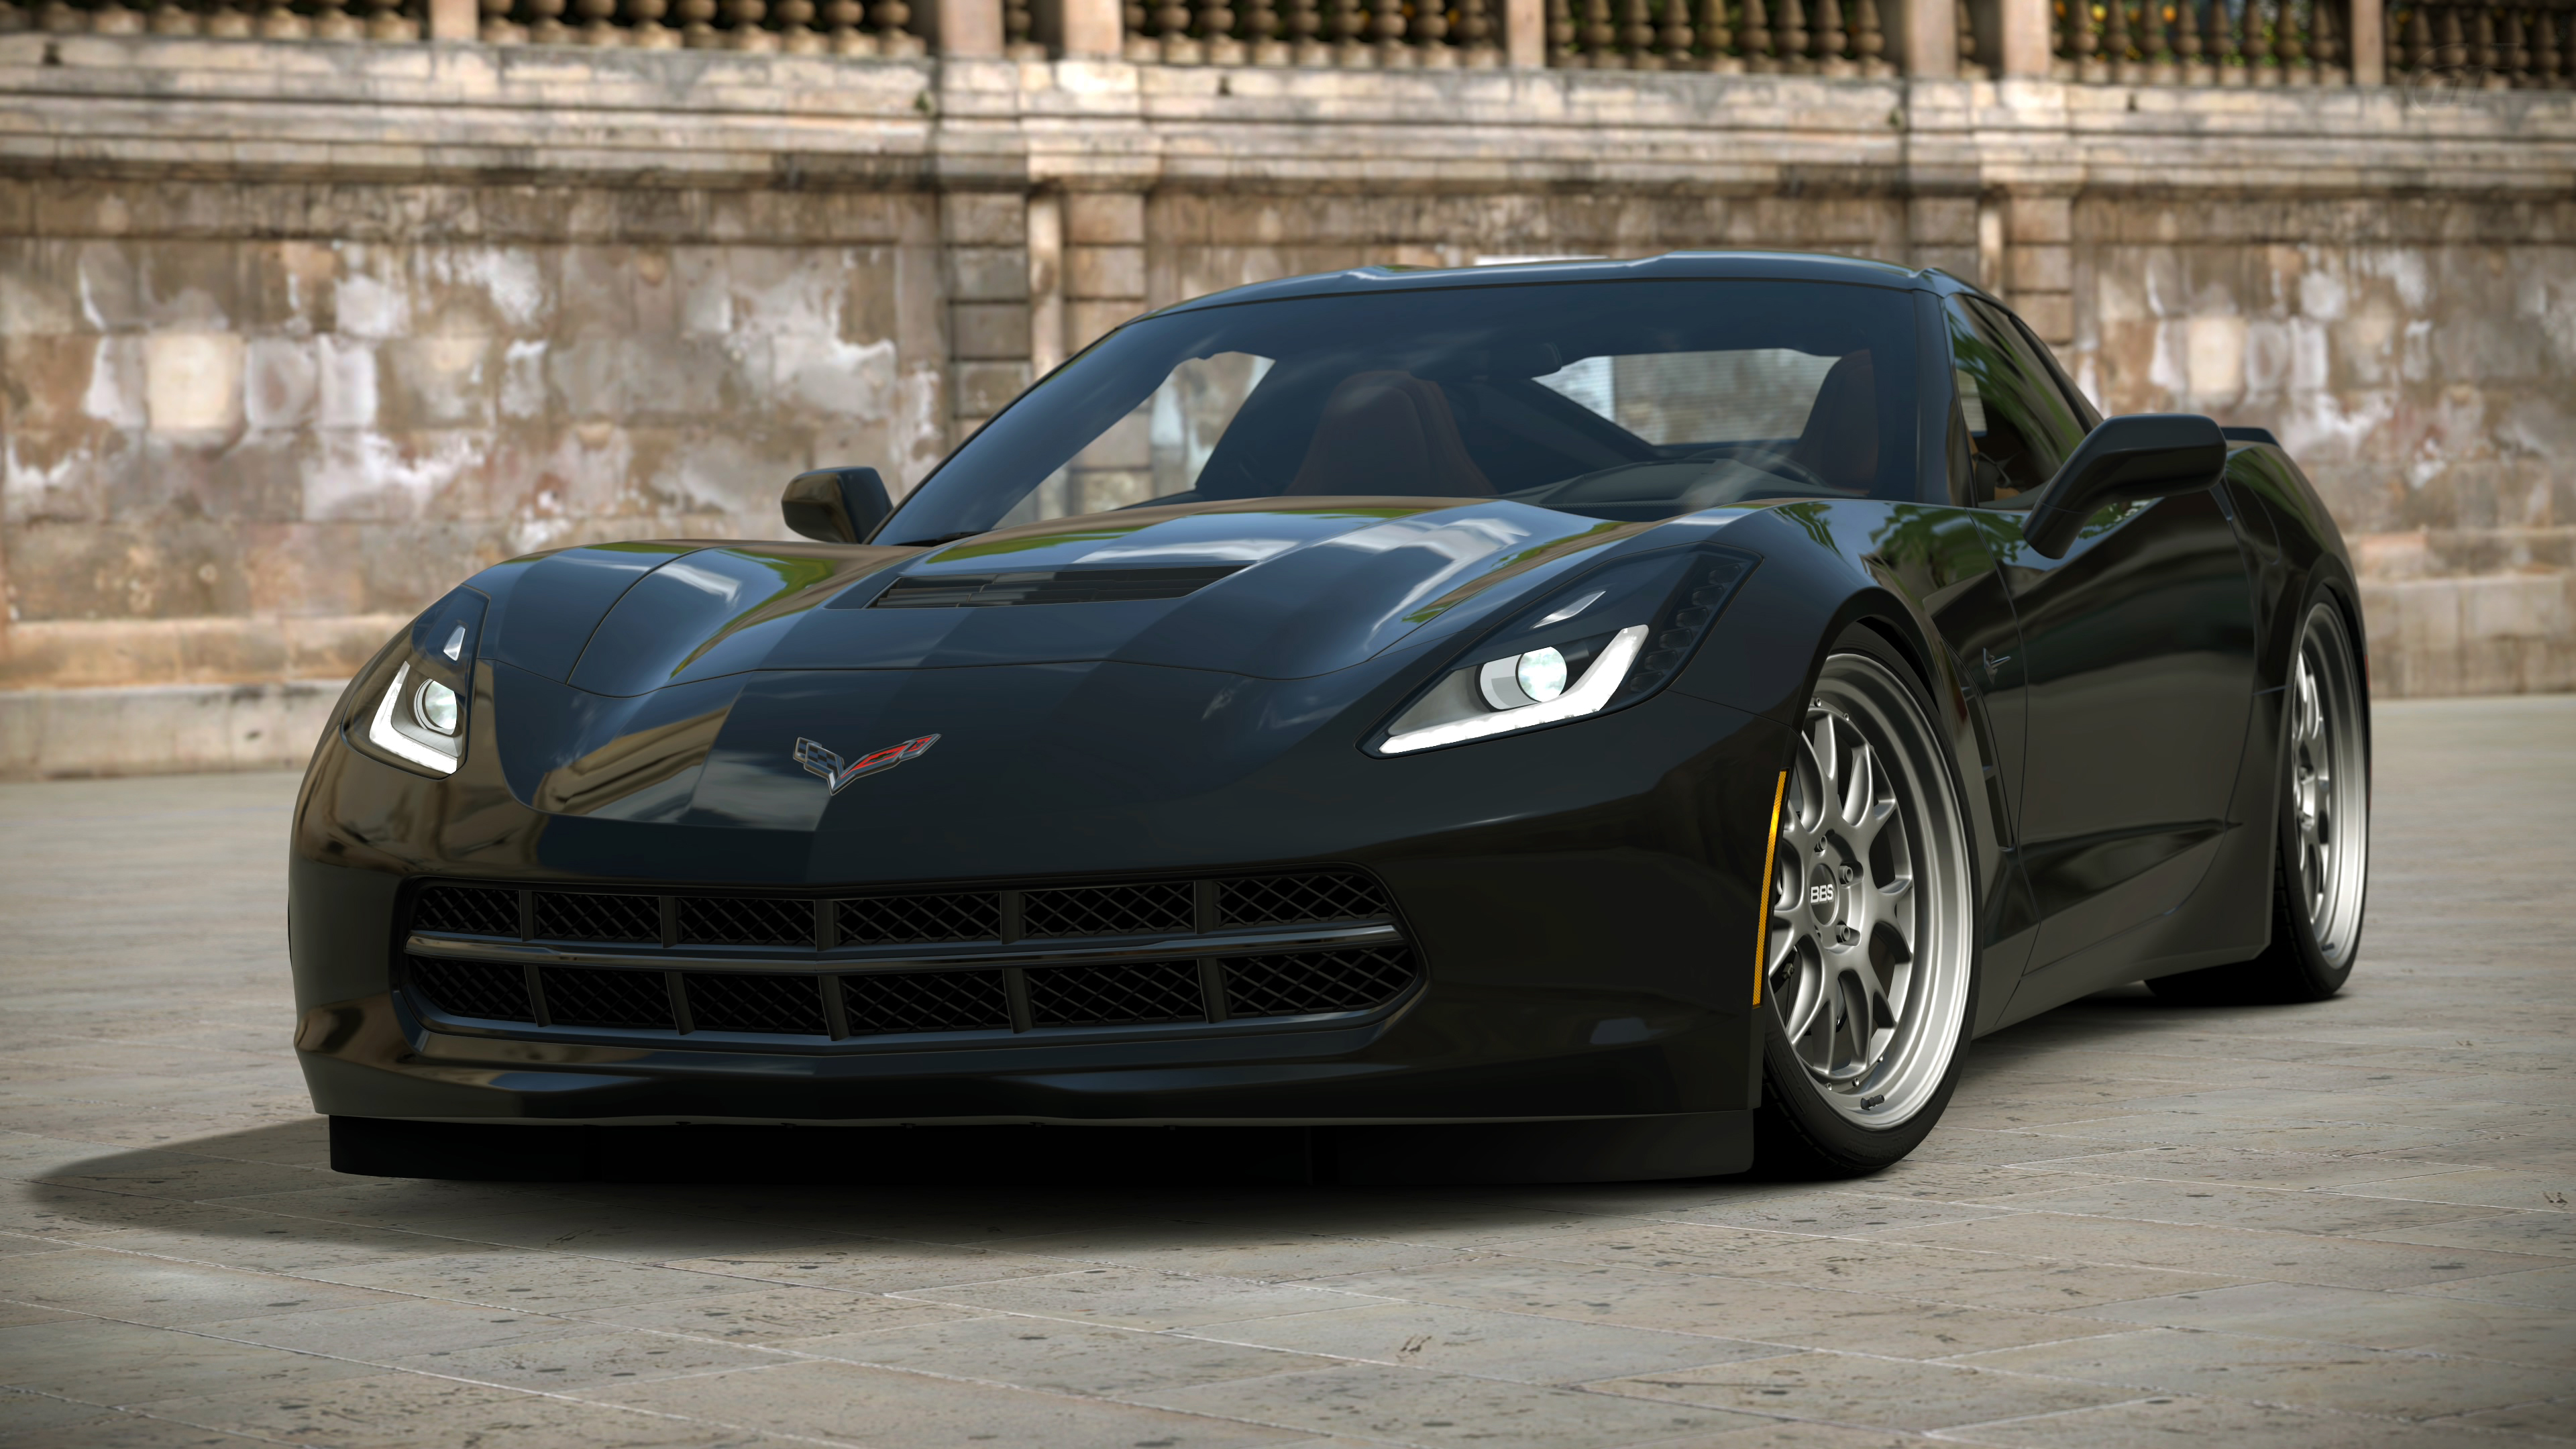 2014 Chevrolet Corvette Stingray C7 Gt6 By Vertualissimo